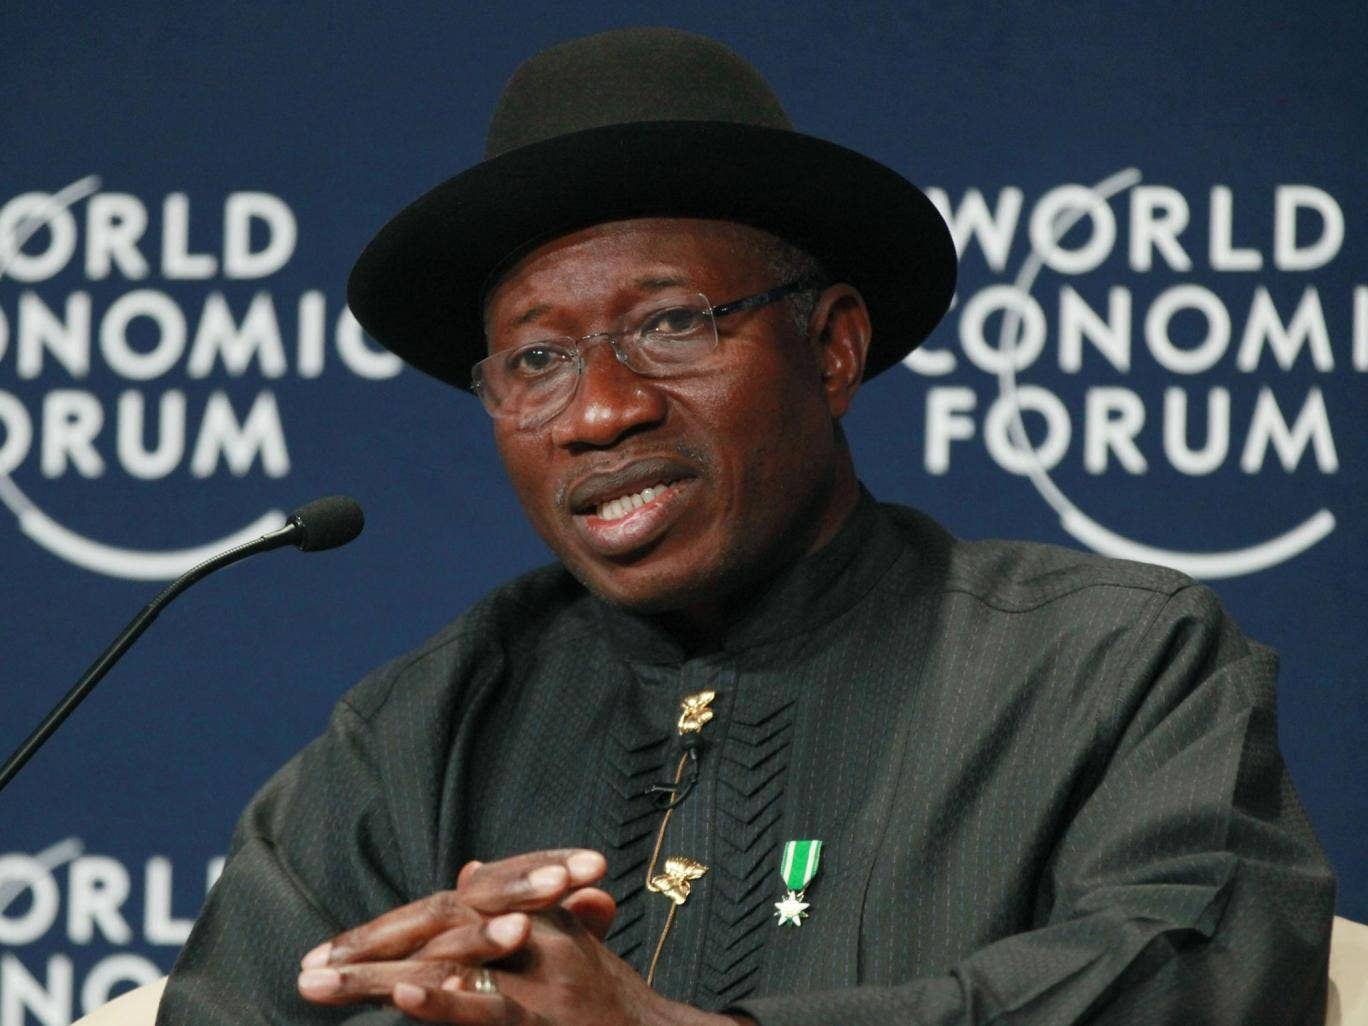 President Goodluck Jonathan has failed to make an appearance in Chibok, the village from where over 300 Nigerian schoolgirls were taken